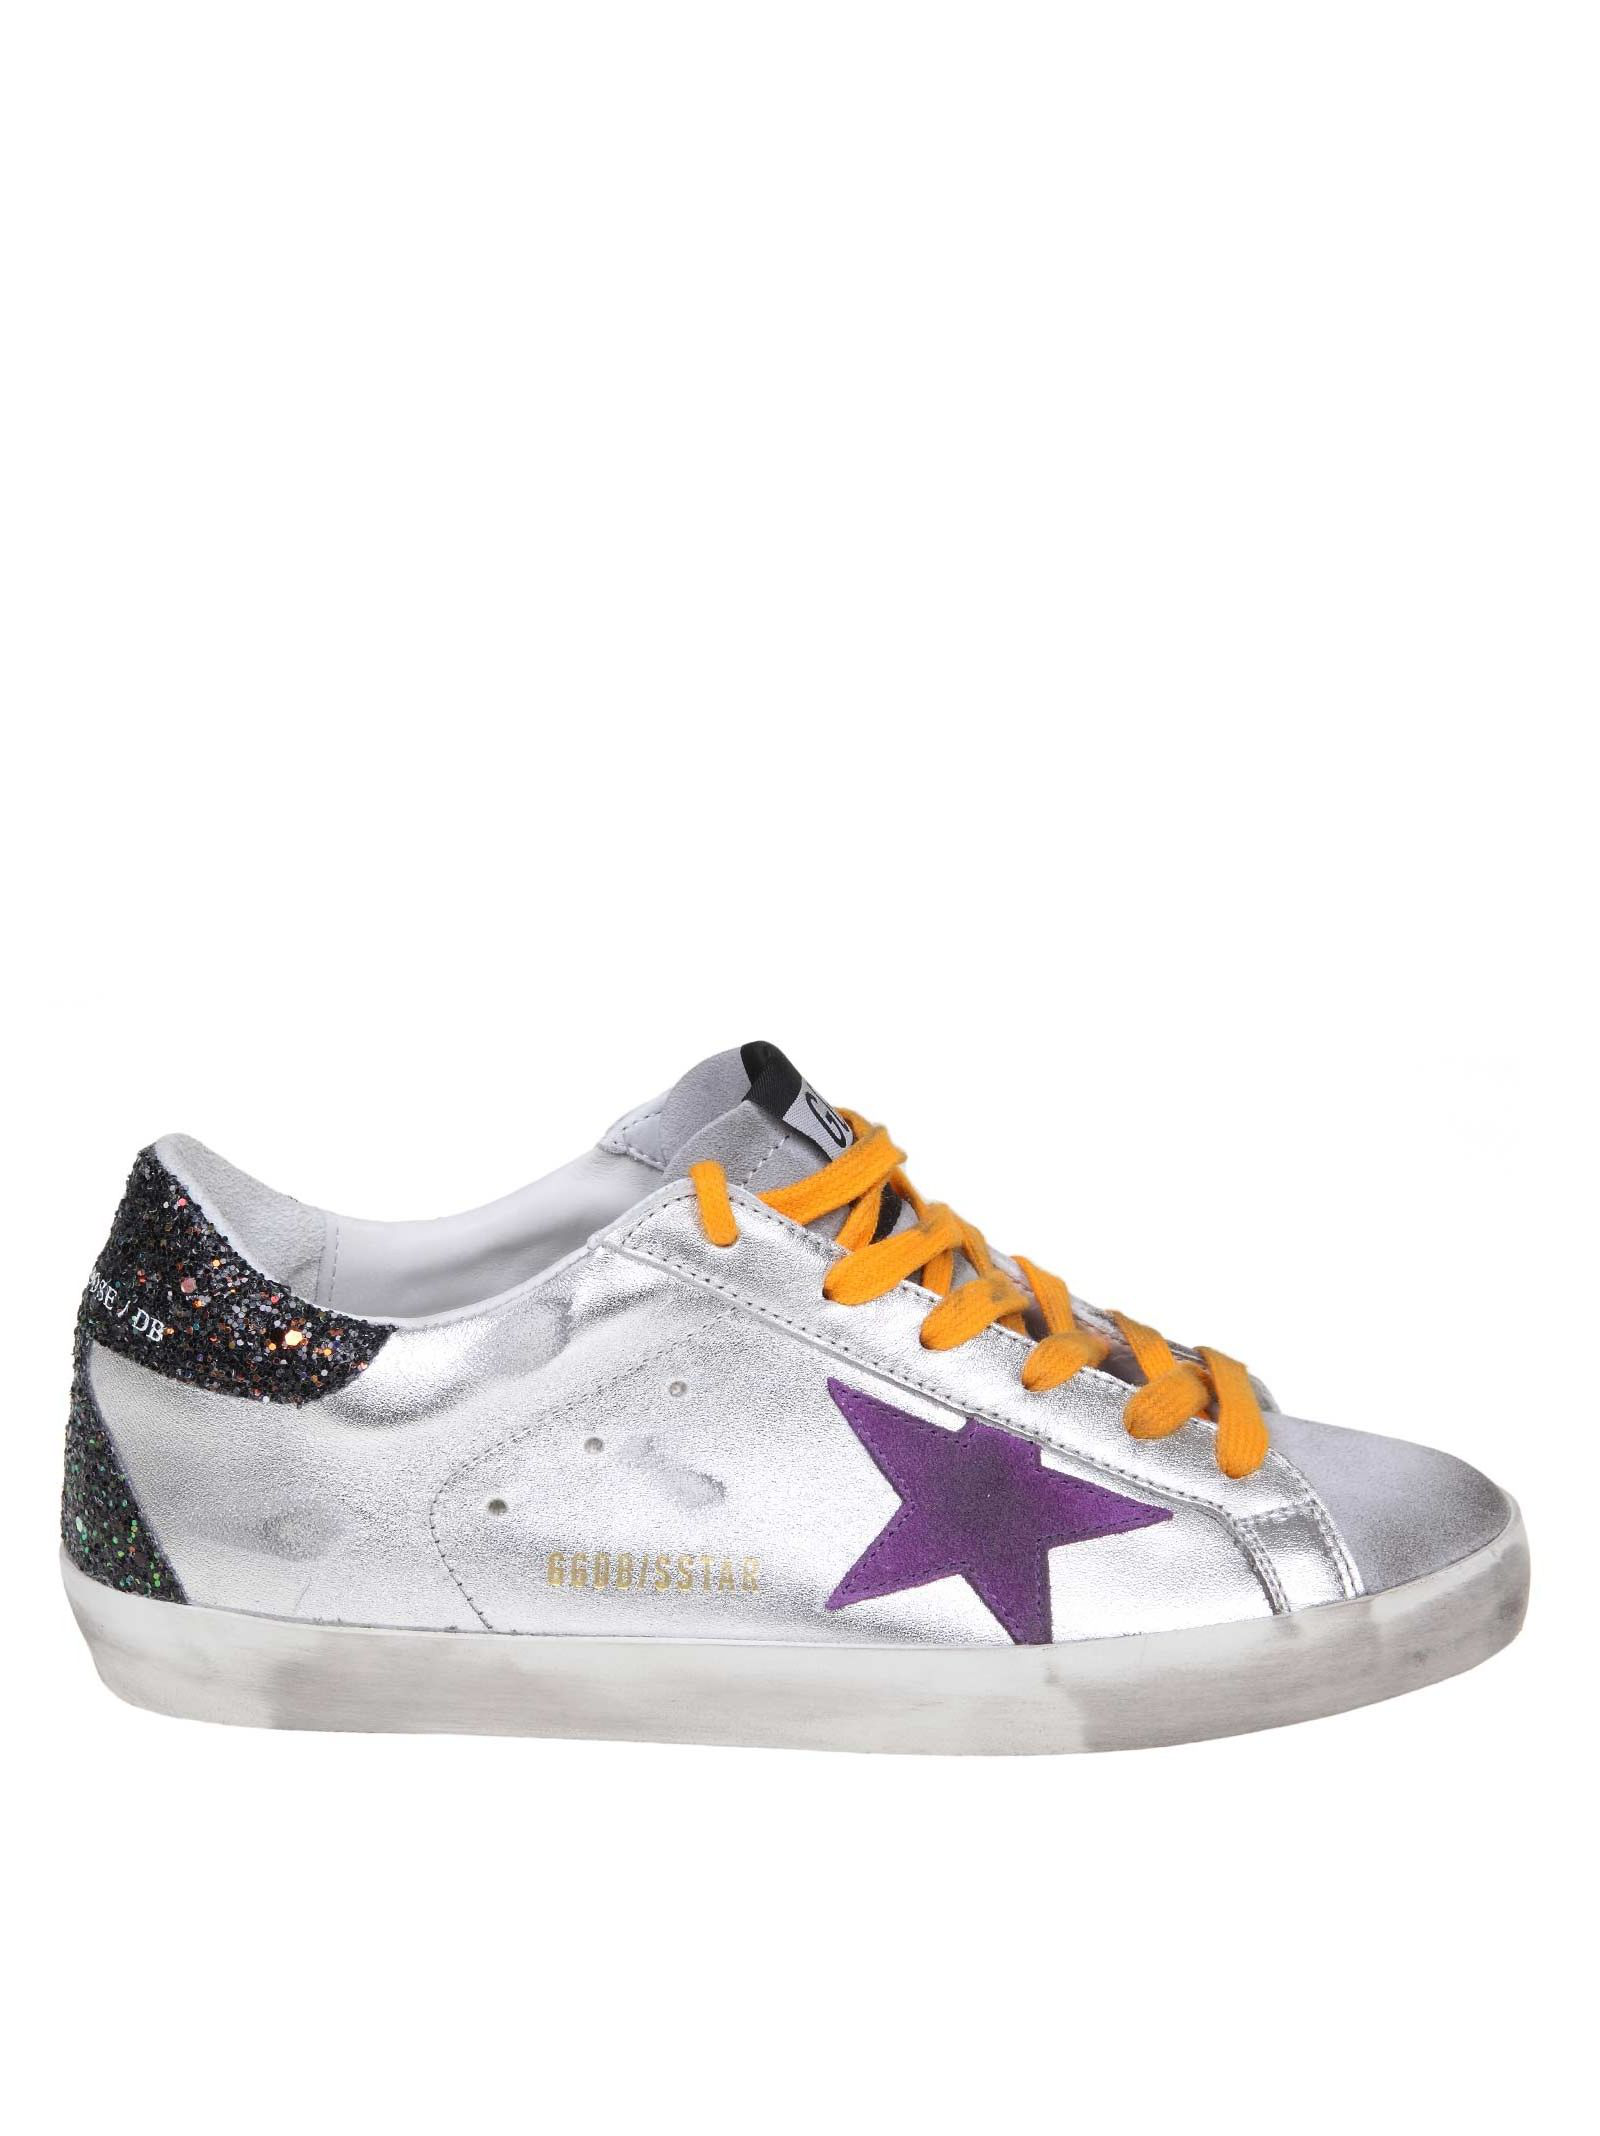 18f466fa899d Golden Goose Superstar Sneakers In Silver Leather